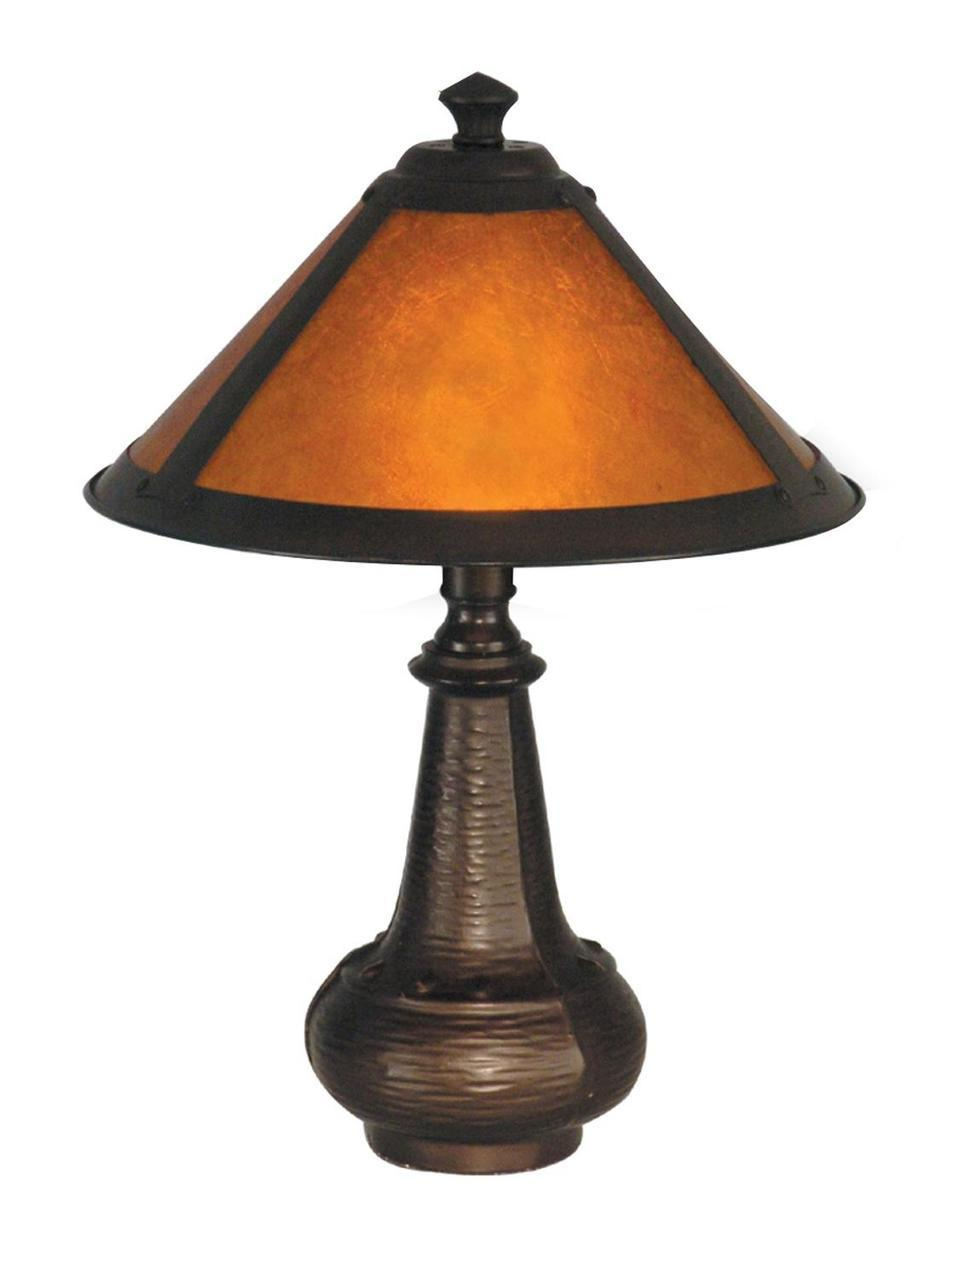 antique bronze amber hunter accent table lamp with mica cone lamps shade weathered grey end tan threshold barn door buffet small phone brown round pottery gold resin wicker chairs